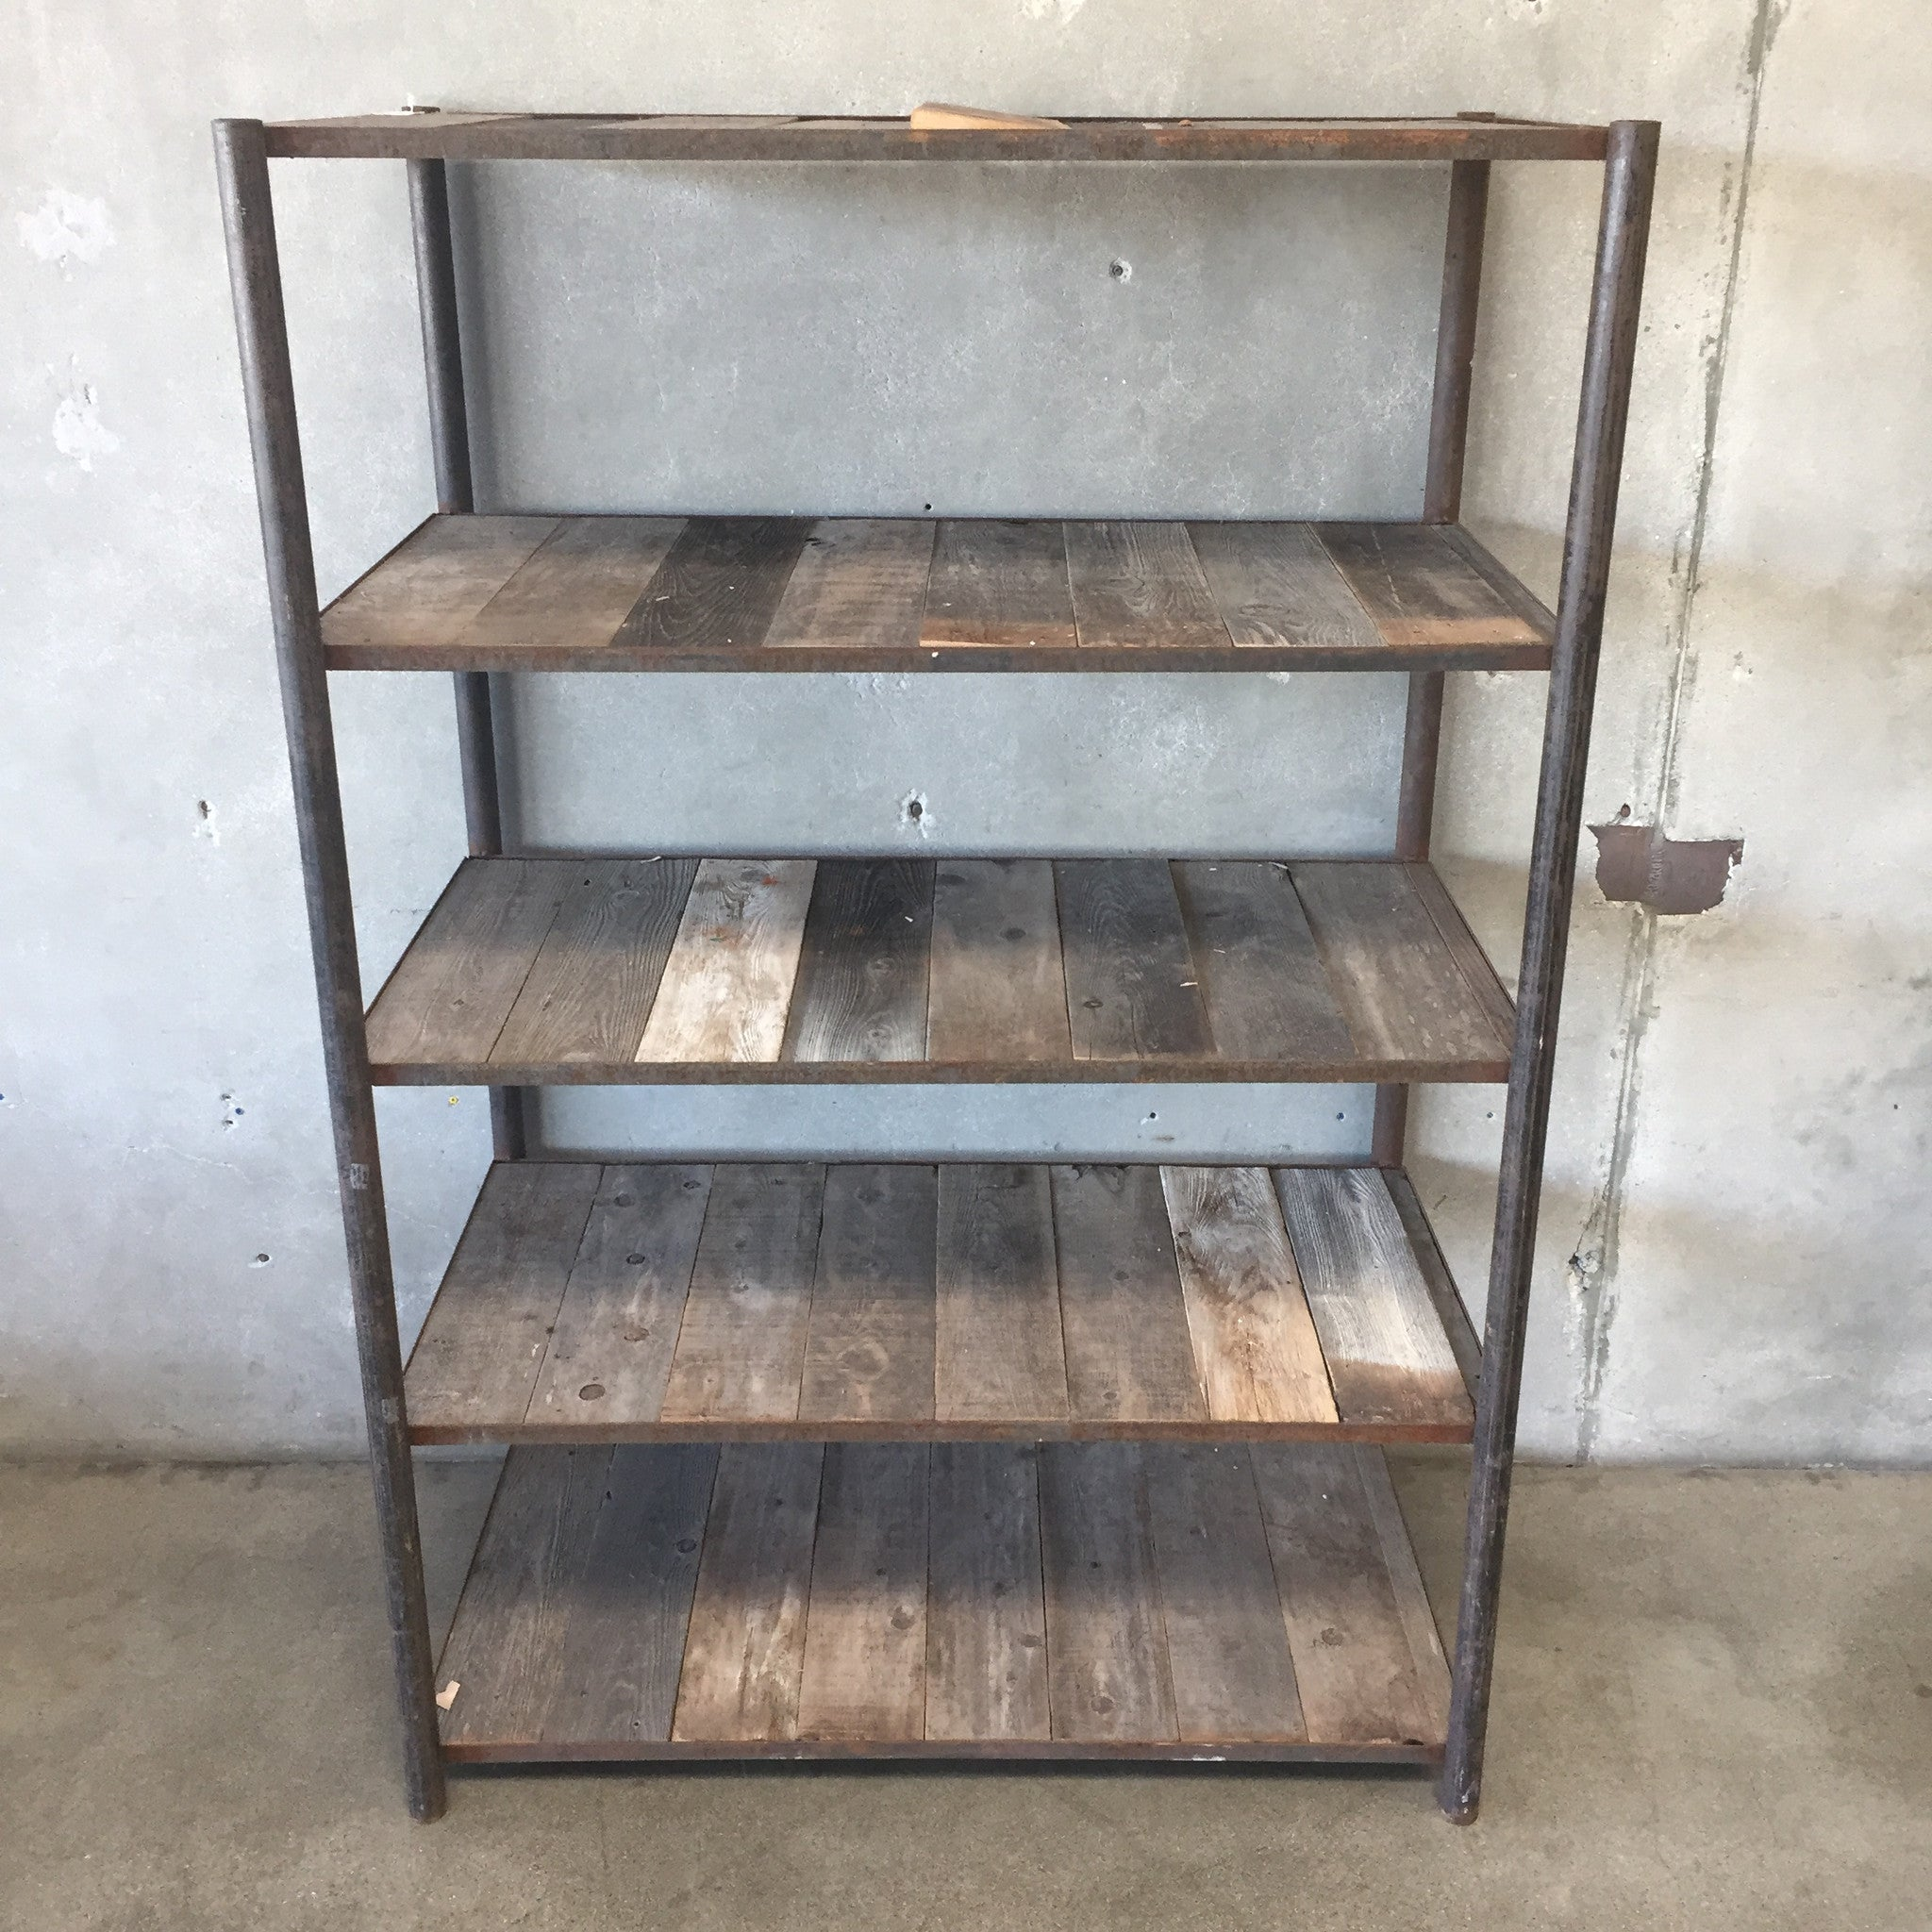 Industrial Reclaimed Wood Shelving Unit Industrial Reclaimed Wood Shelving  Unit ...